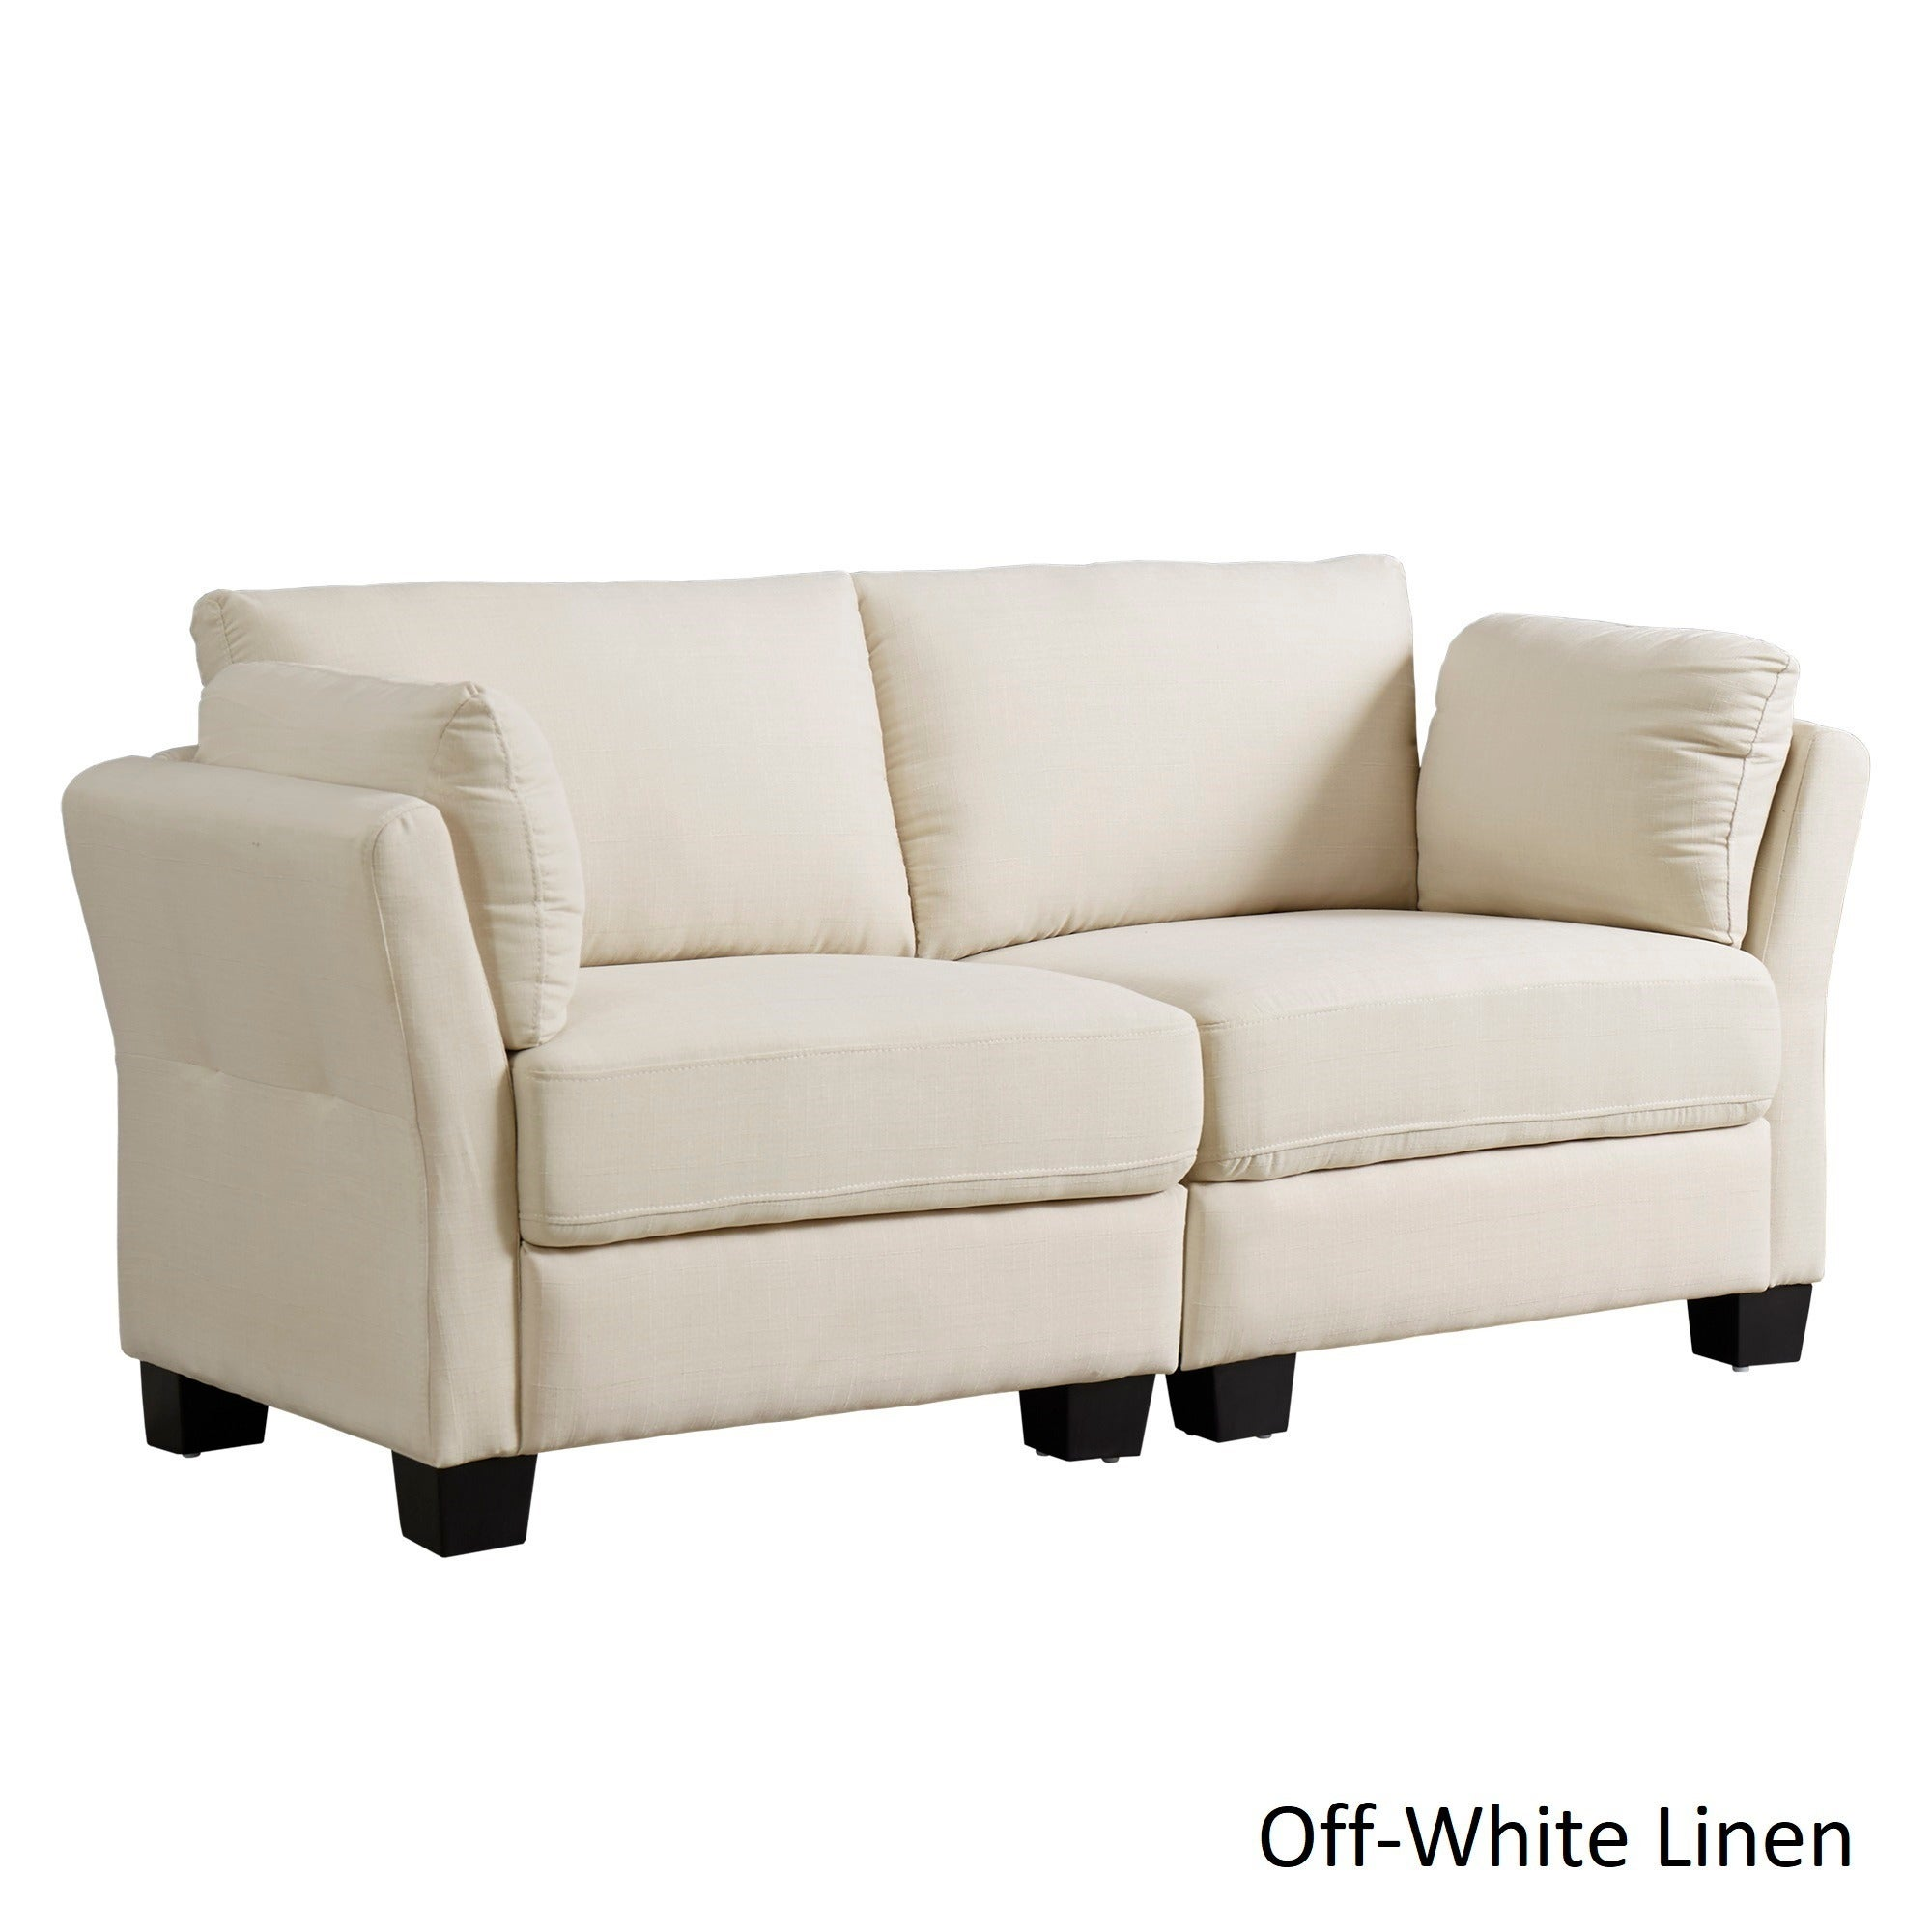 Elize Modern Linen Fabric Loveseat By INSPIRE Q Bold   Free Shipping Today    Overstock   20522671